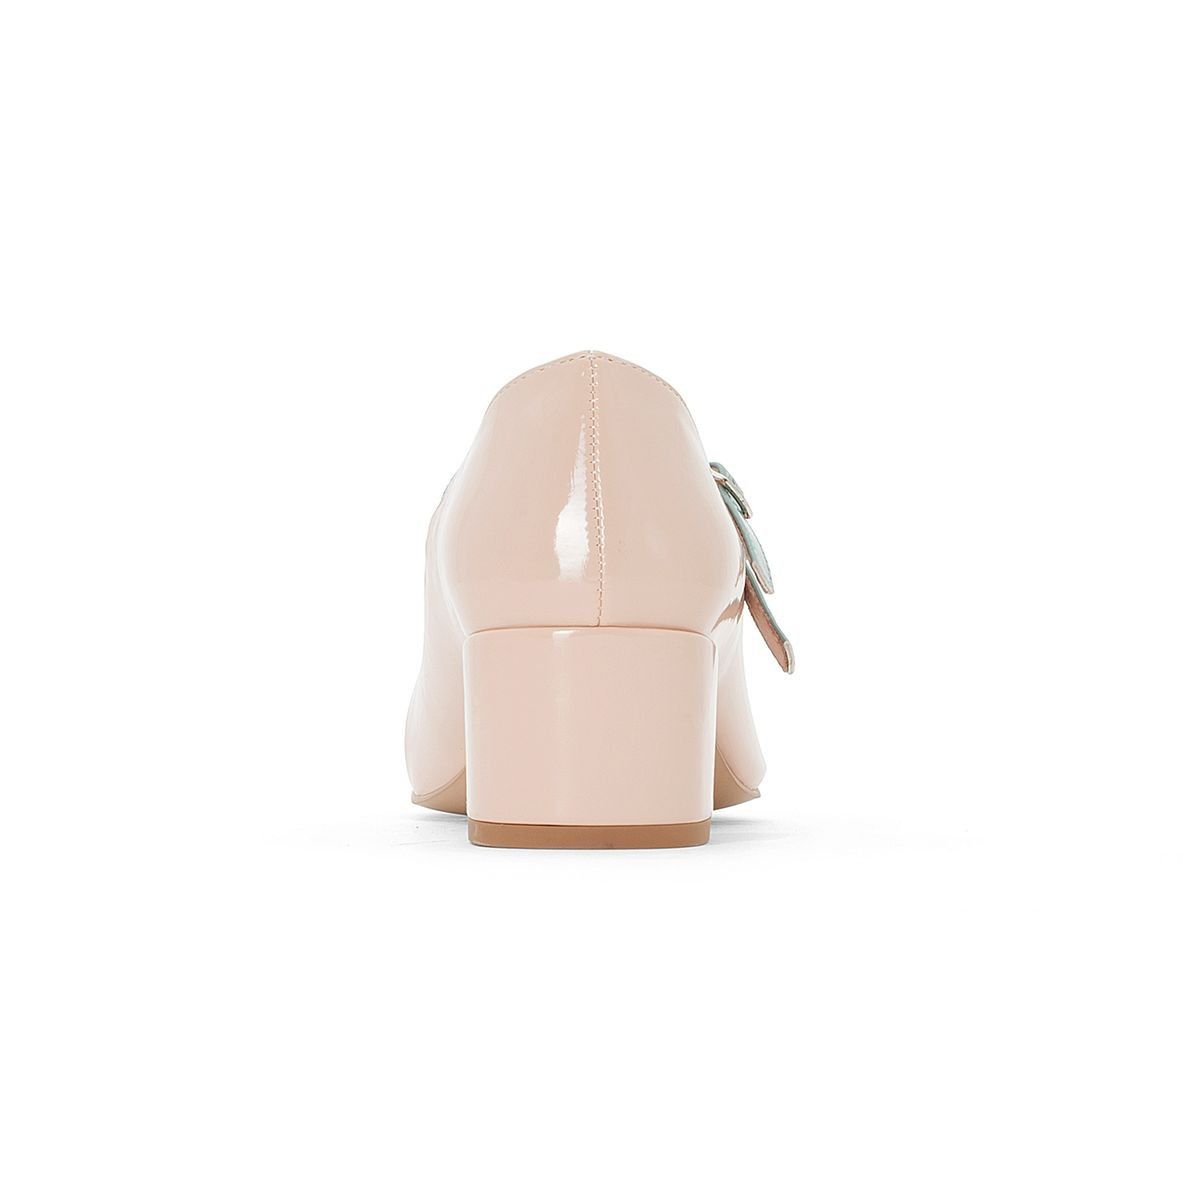 Brides Ballerines Ballerines Taille35Products RoseDouble Vernies Ballerines Vernies Brides RoseDouble Taille35Products erCdxWBo